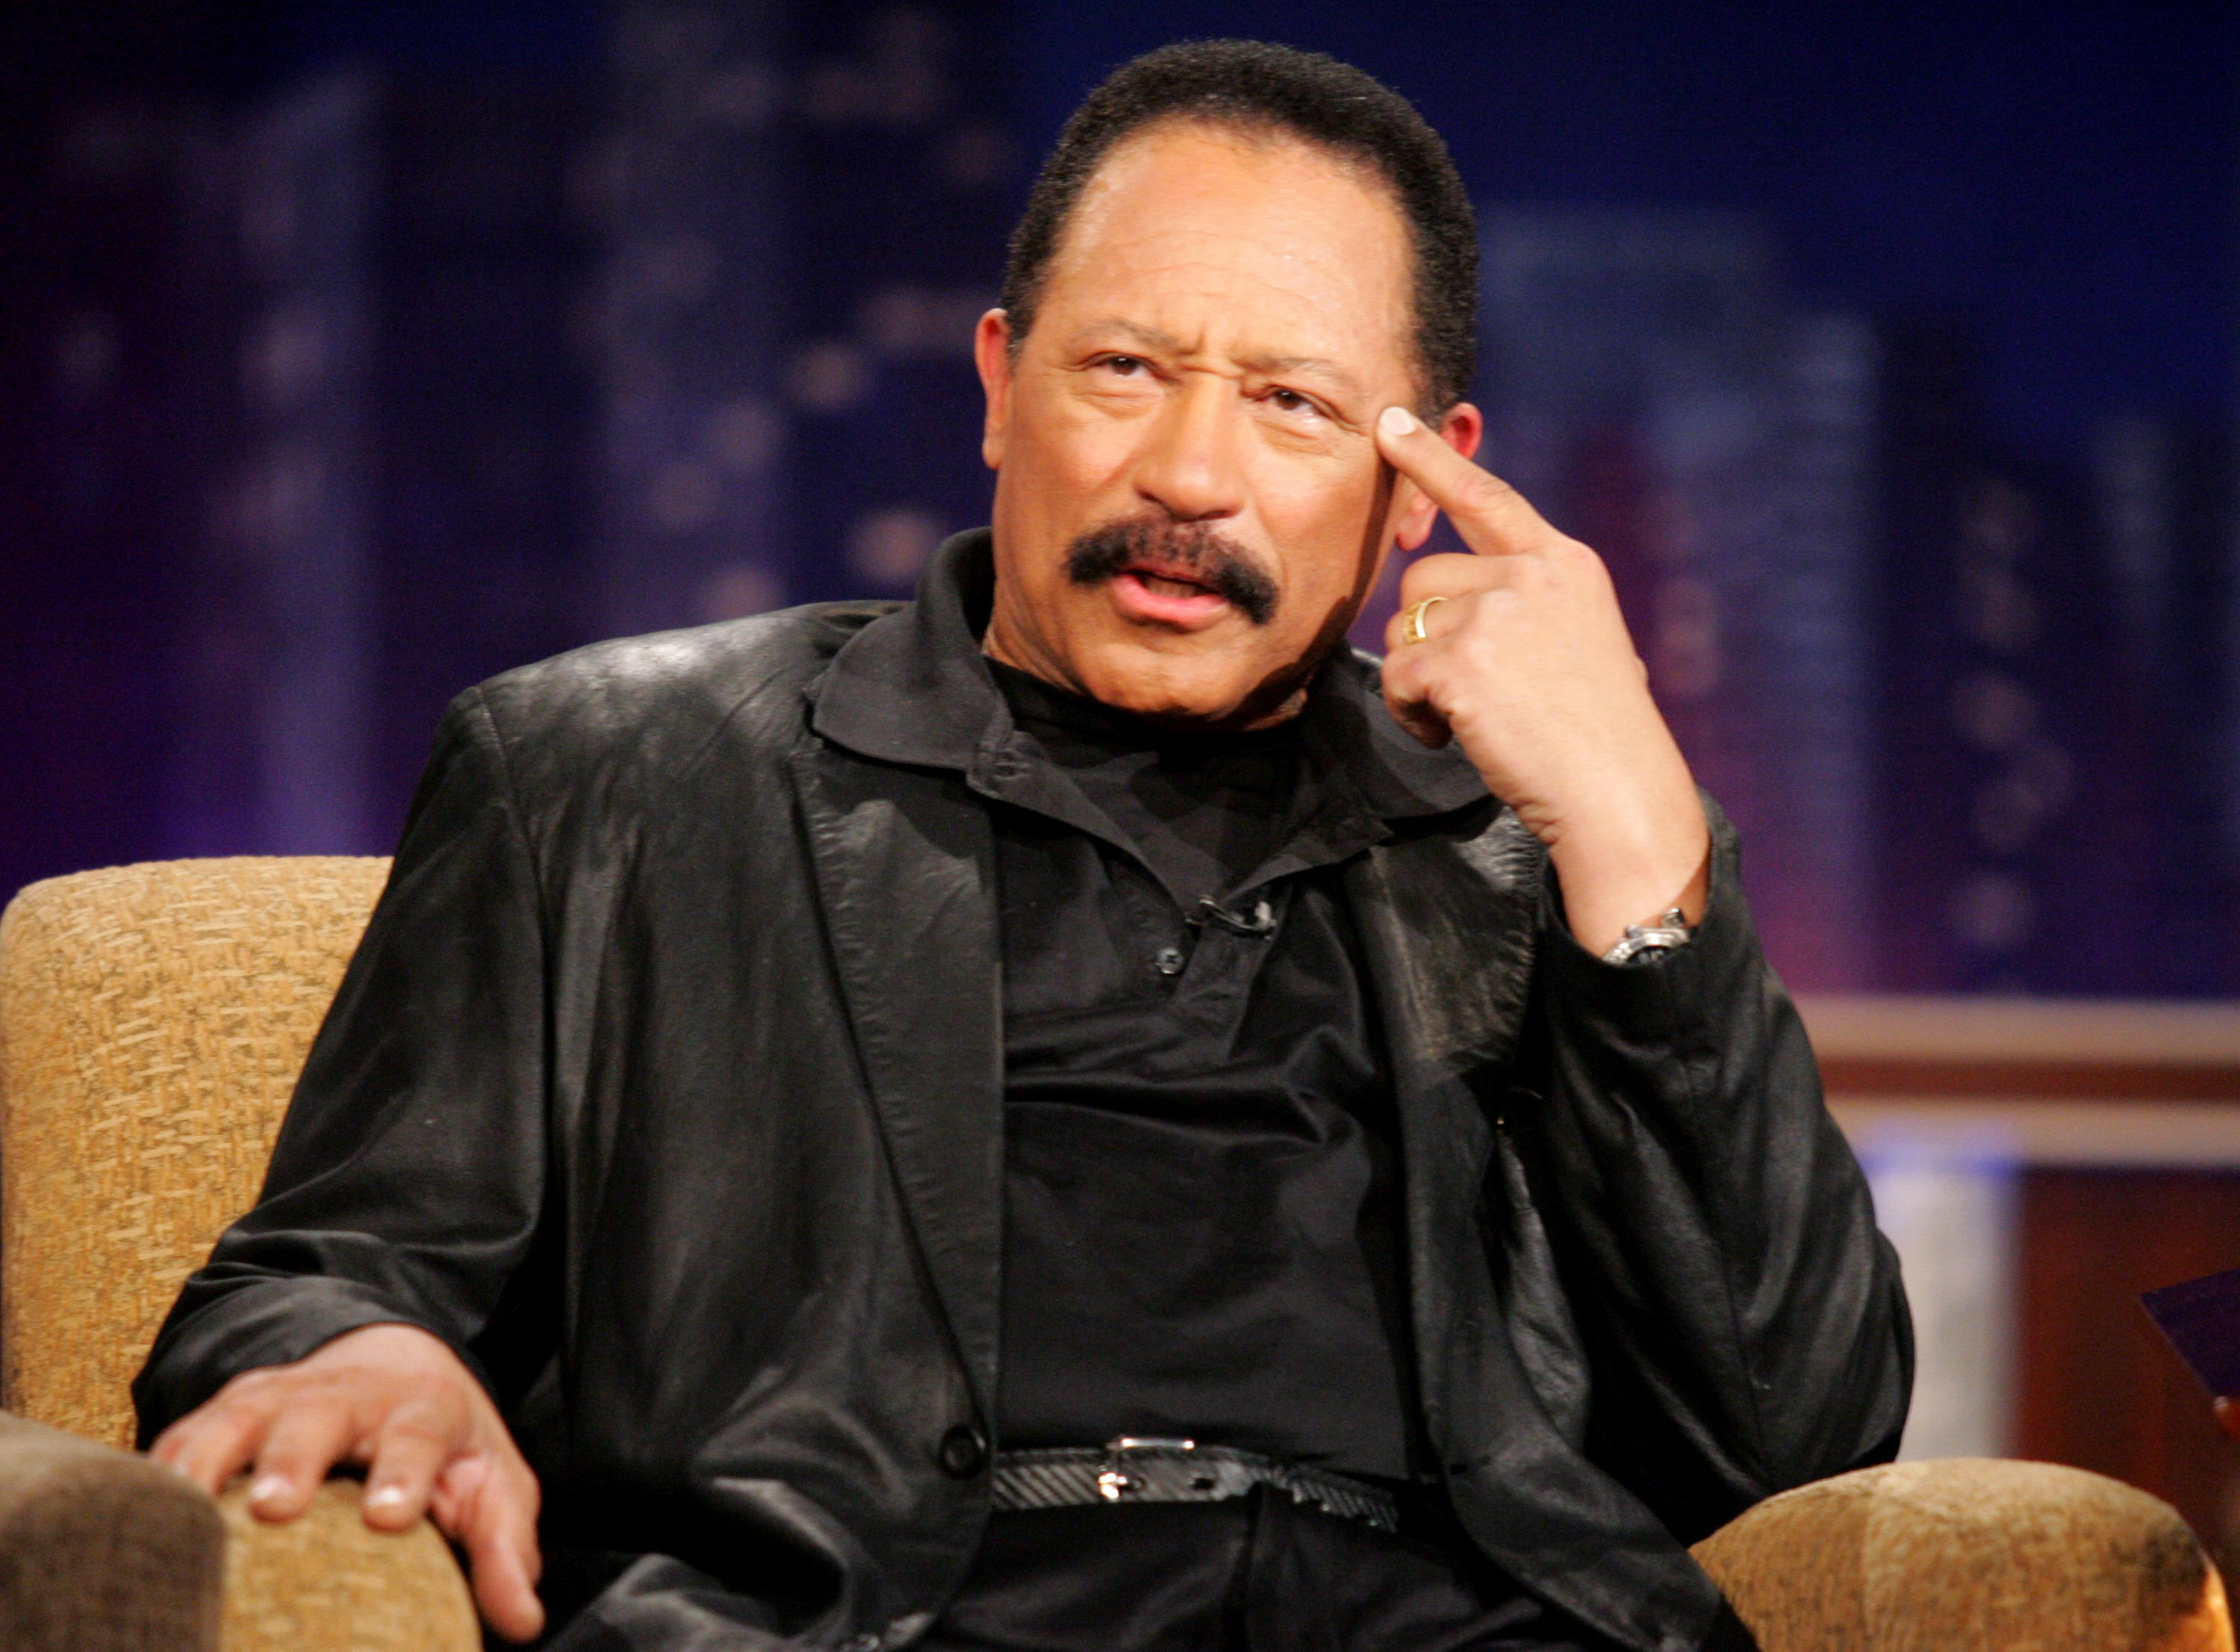 """Judge Joe Brown on the """"Jimmy Kimmel Live"""" show on ABC on May 23, 2005.   Photo: Getty Images"""